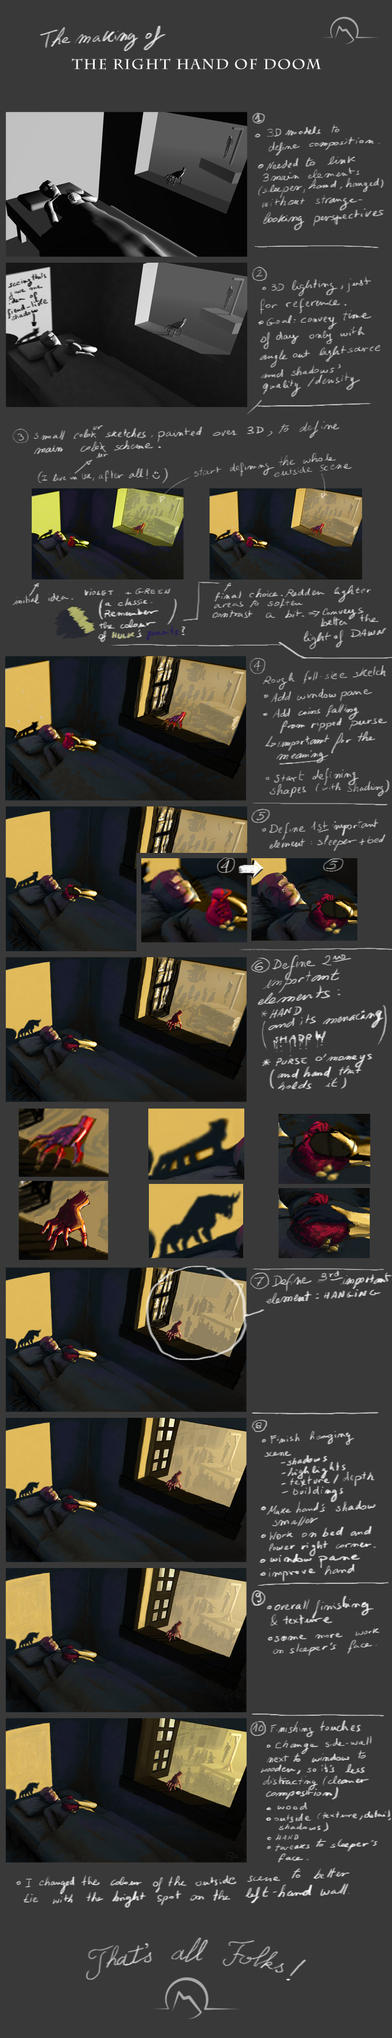 making of - Right Hand of Doom by mayec